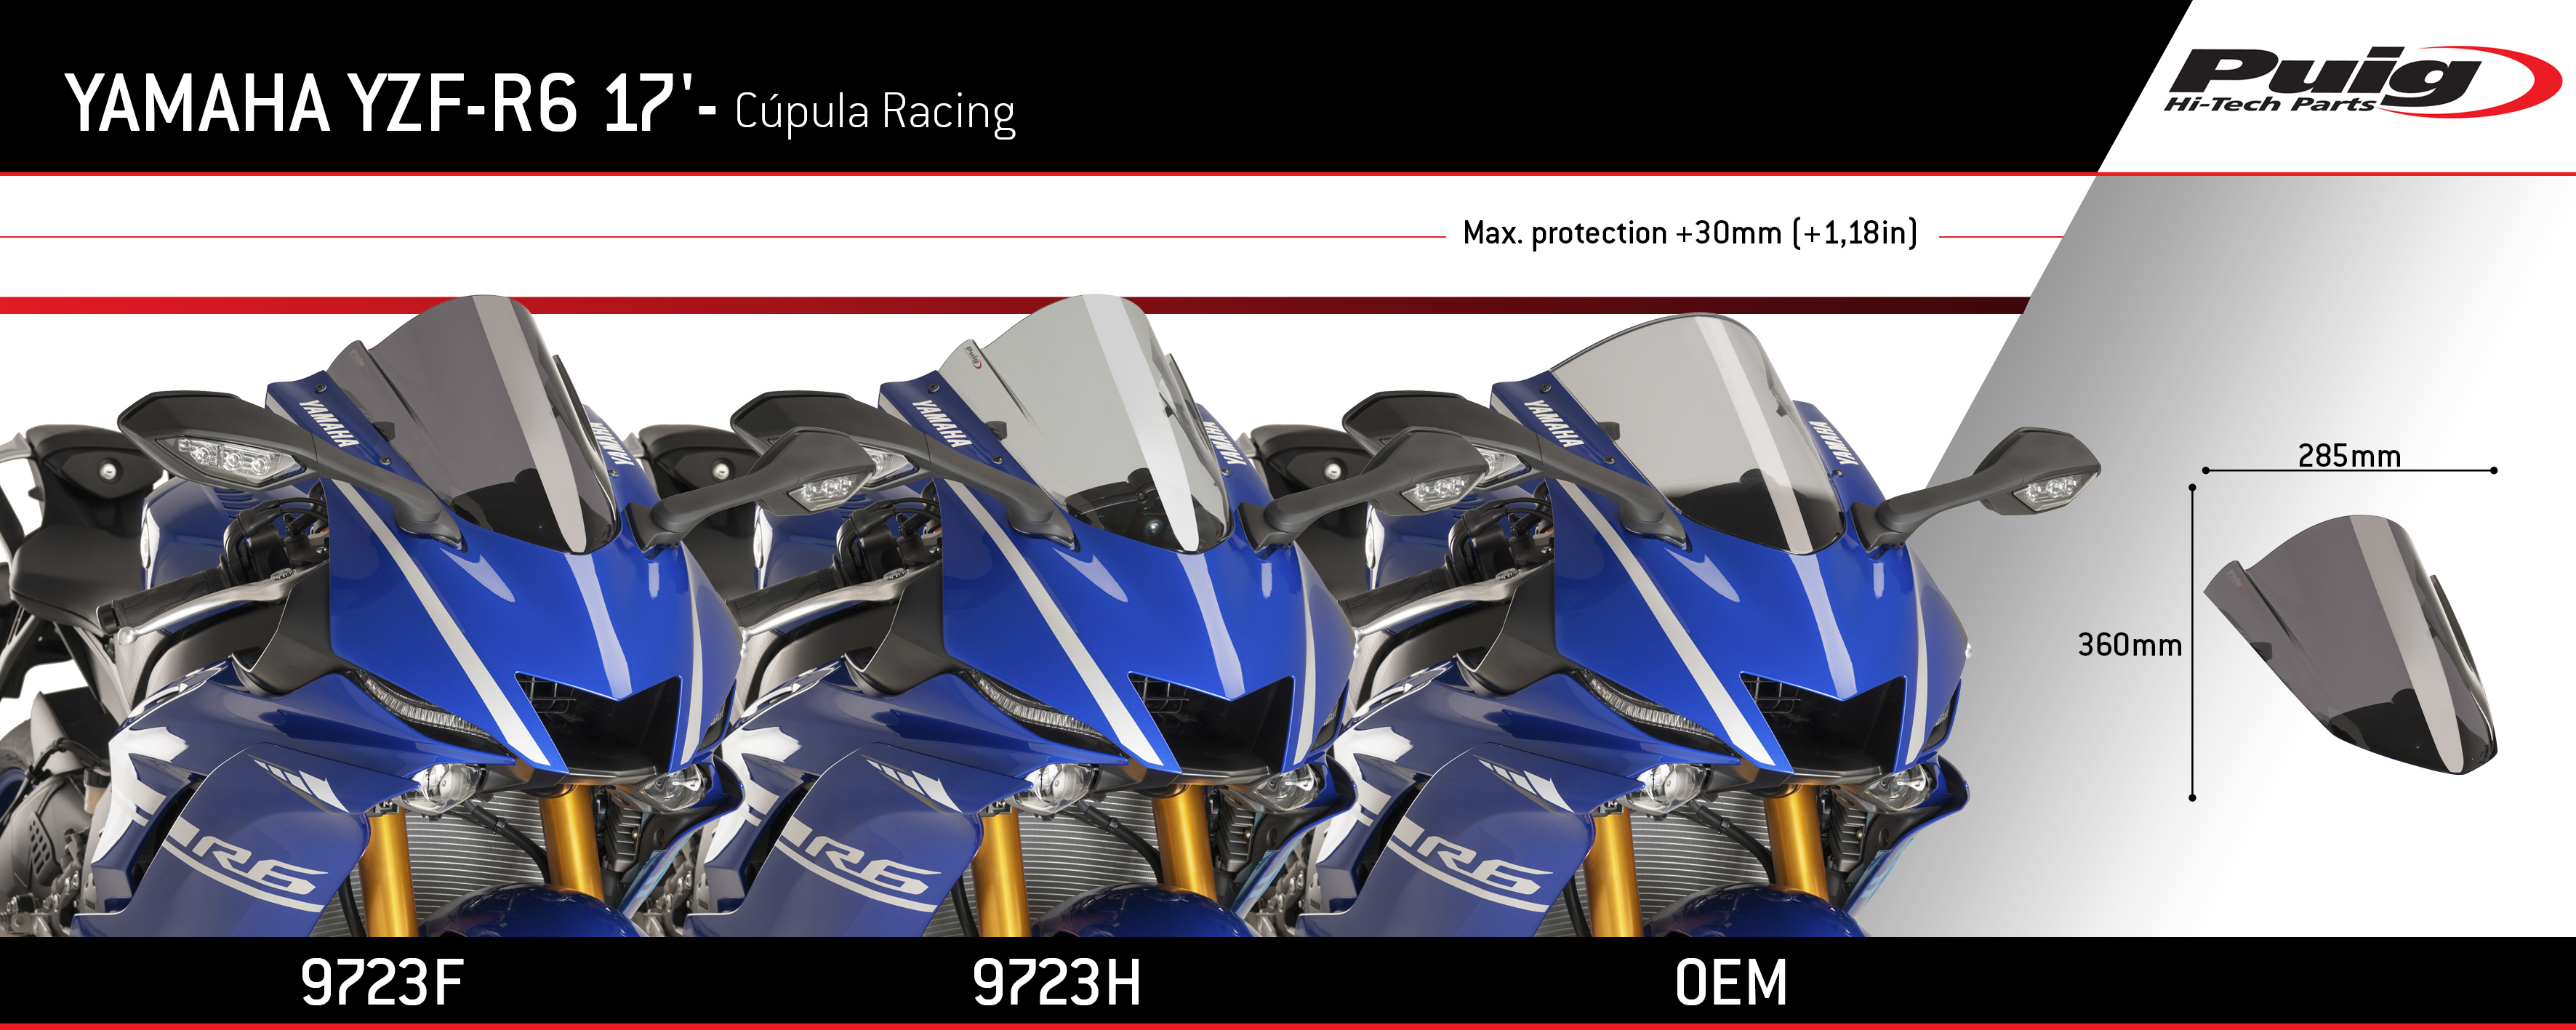 Yamaha R6 Modifications